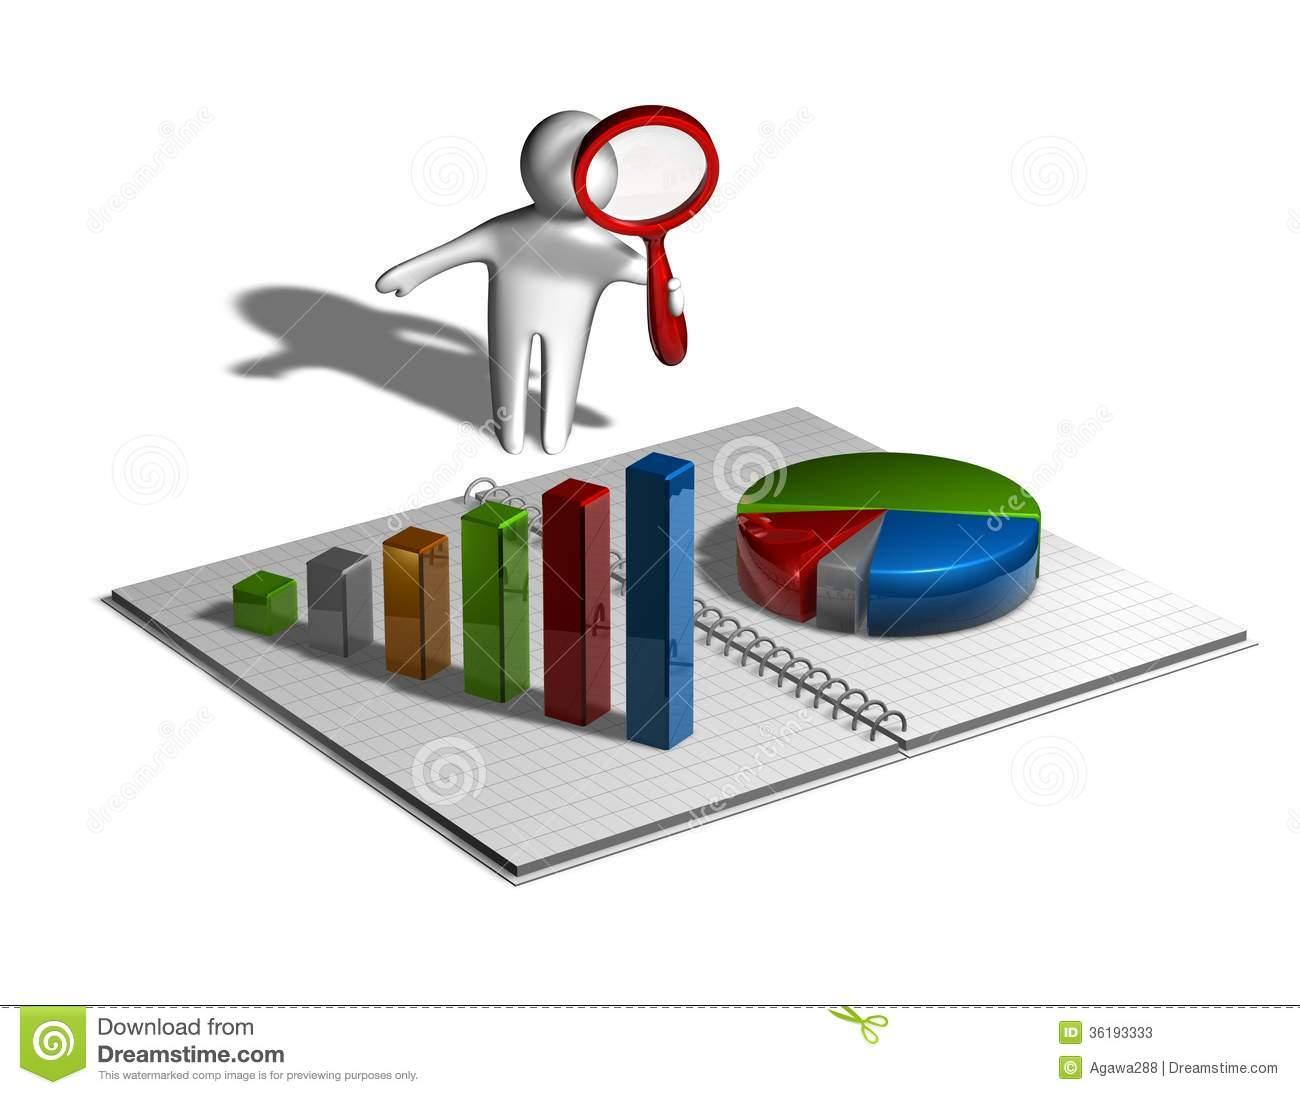 Financial Business Research Concept Stock Photos Image  Financial Business Research Concept Illustration Isolated  Stock Photos Financial Business Research Concept Illustration Isolated Image